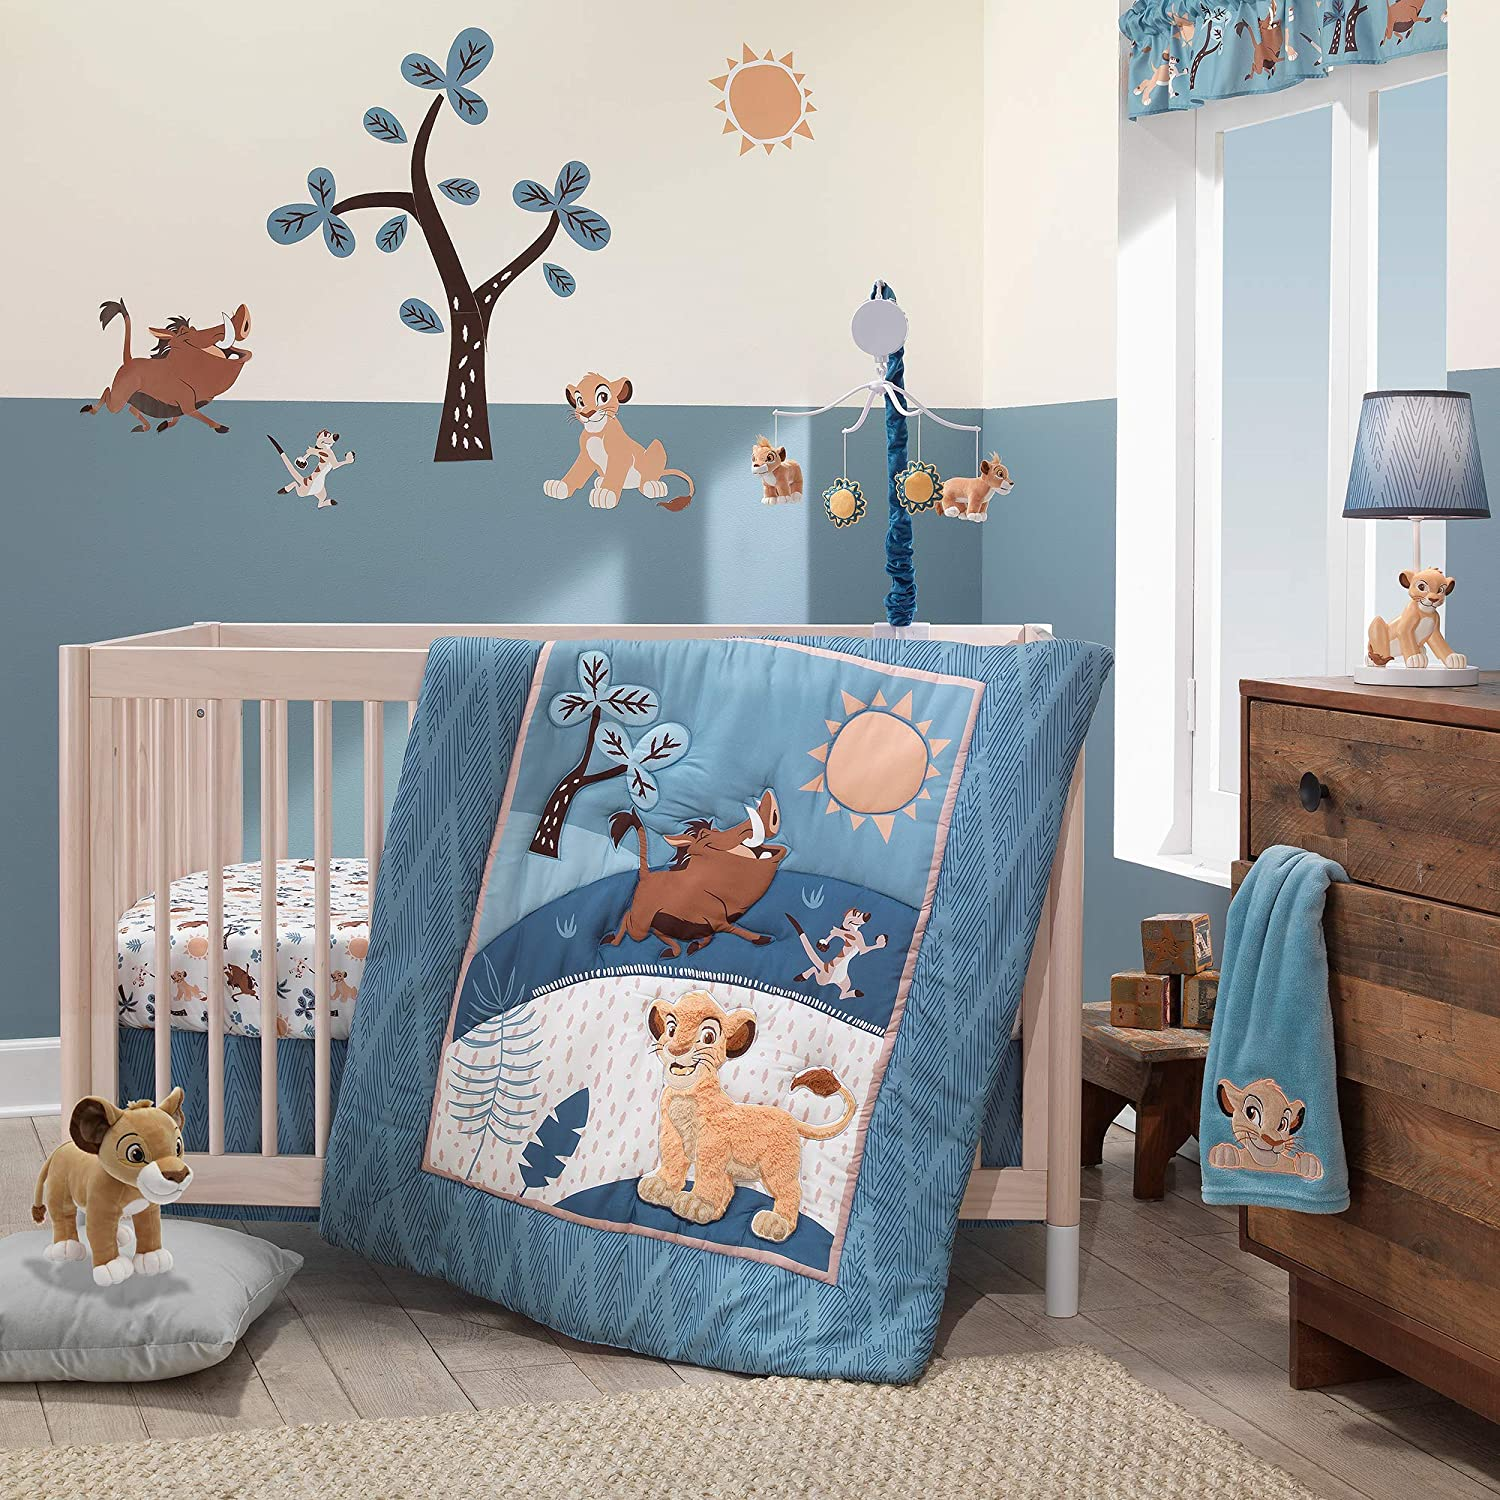 Lambs /& Ivy Disney Baby Lion King Adventure Tree with Simba//Timon//Pumbaa Wall Decals//Stickers